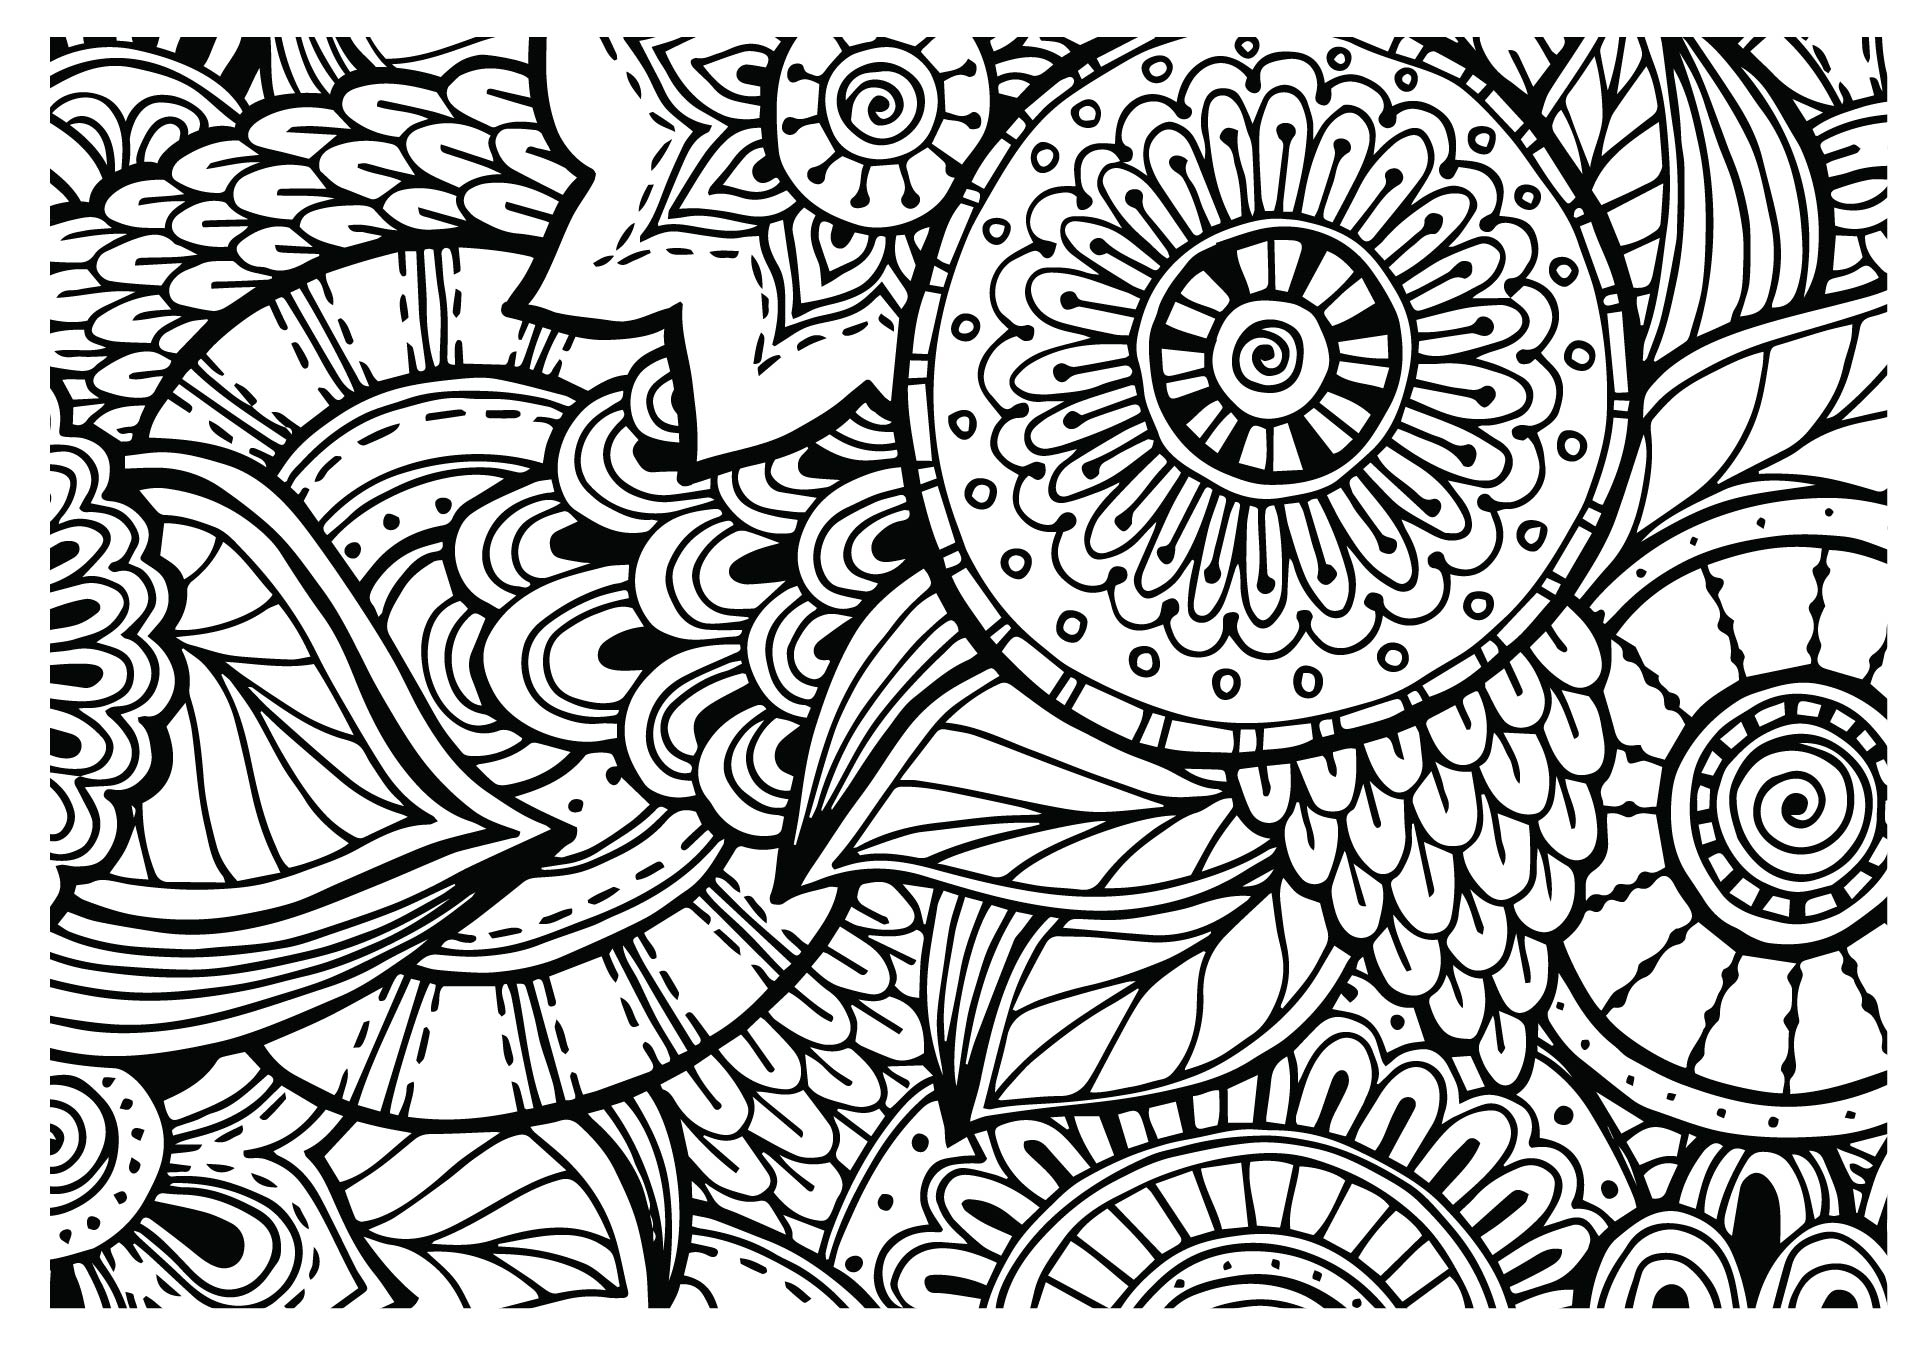 8 Best Images of Printable Coloring Pages Doodle Art ...